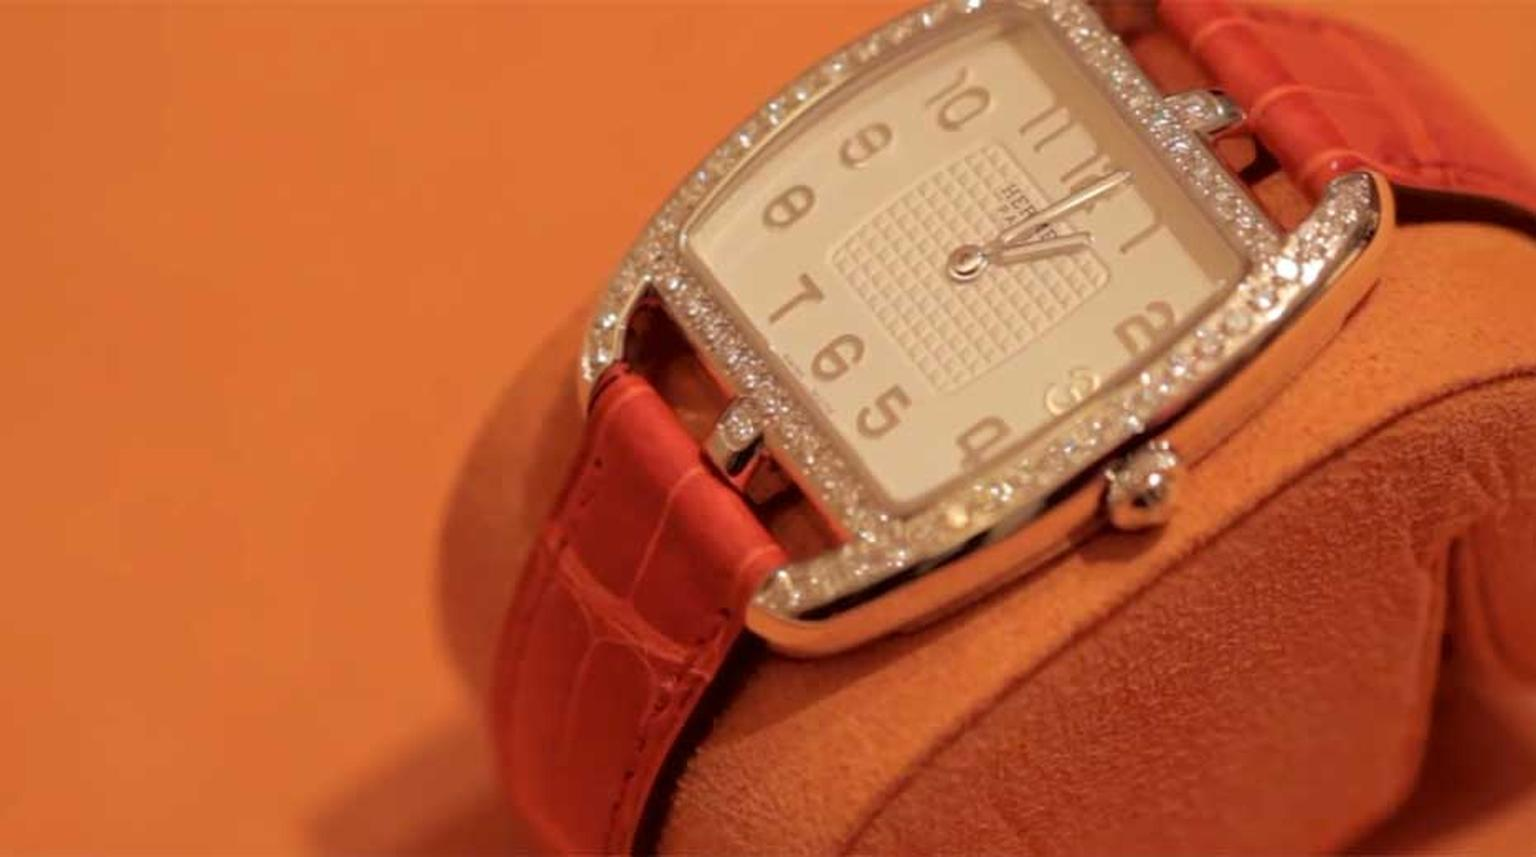 Hermès' latest Cape Cod watch is now available in silver, which may not sound like big news, but there are very few watches made of silver